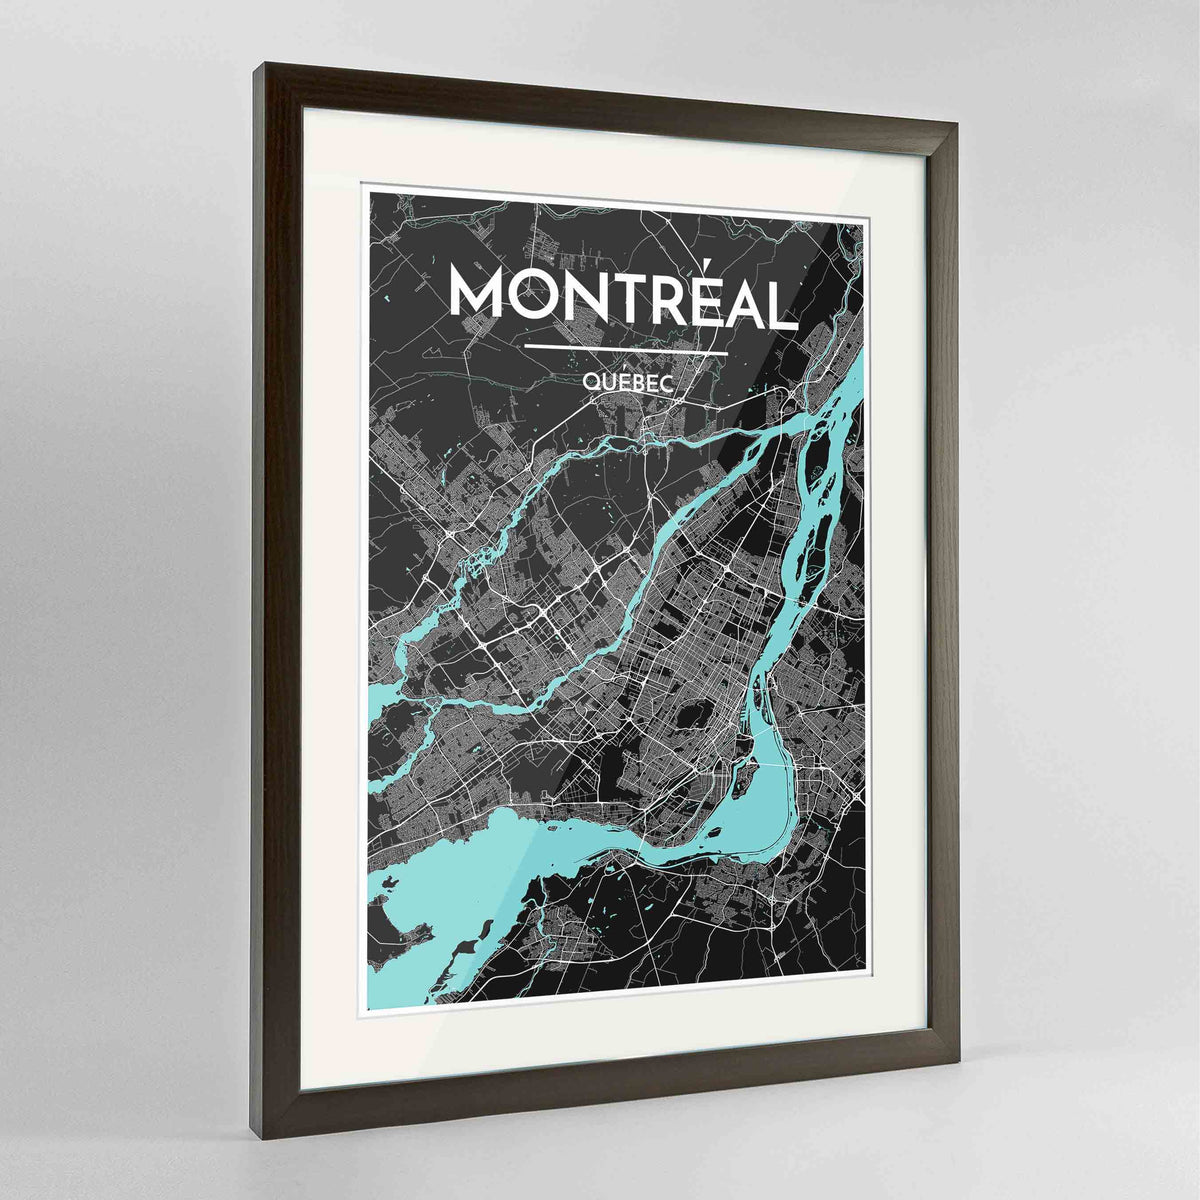 "Framed Montreal City Map 24x36"" Contemporary Walnut frame Point Two Design Group"